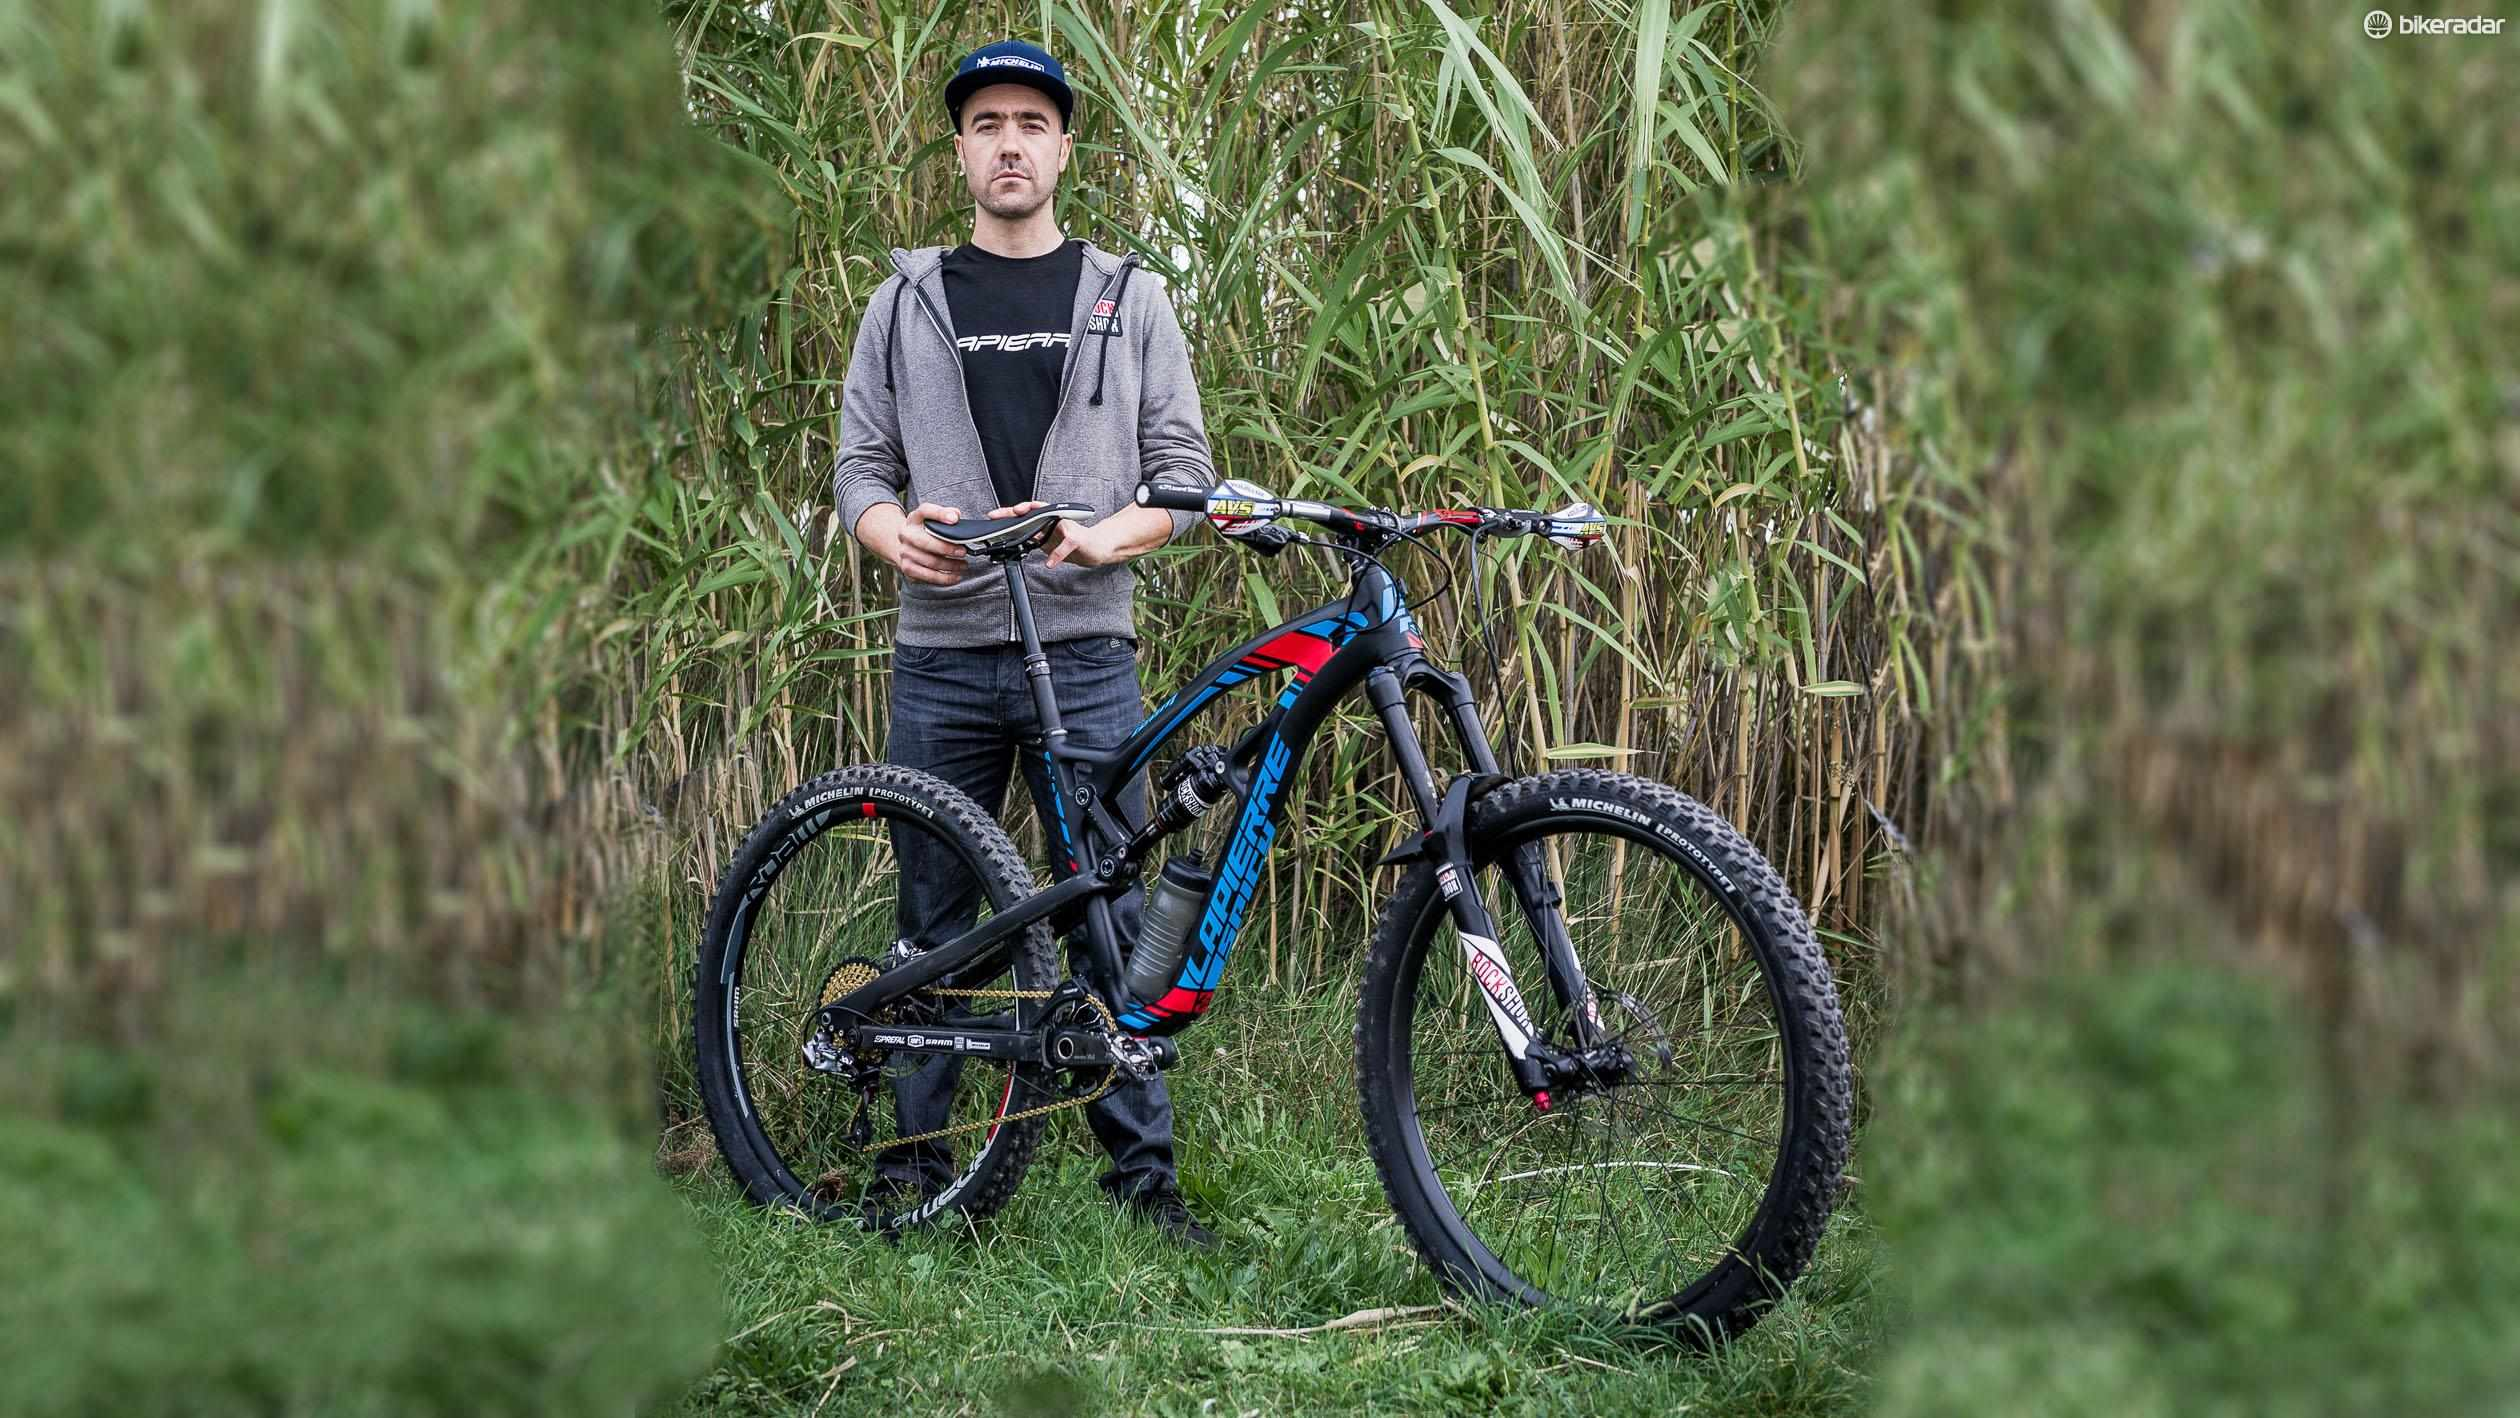 Nico Vouilloz with his 2016 Spicy Team, a bike he's helped design from the ground up